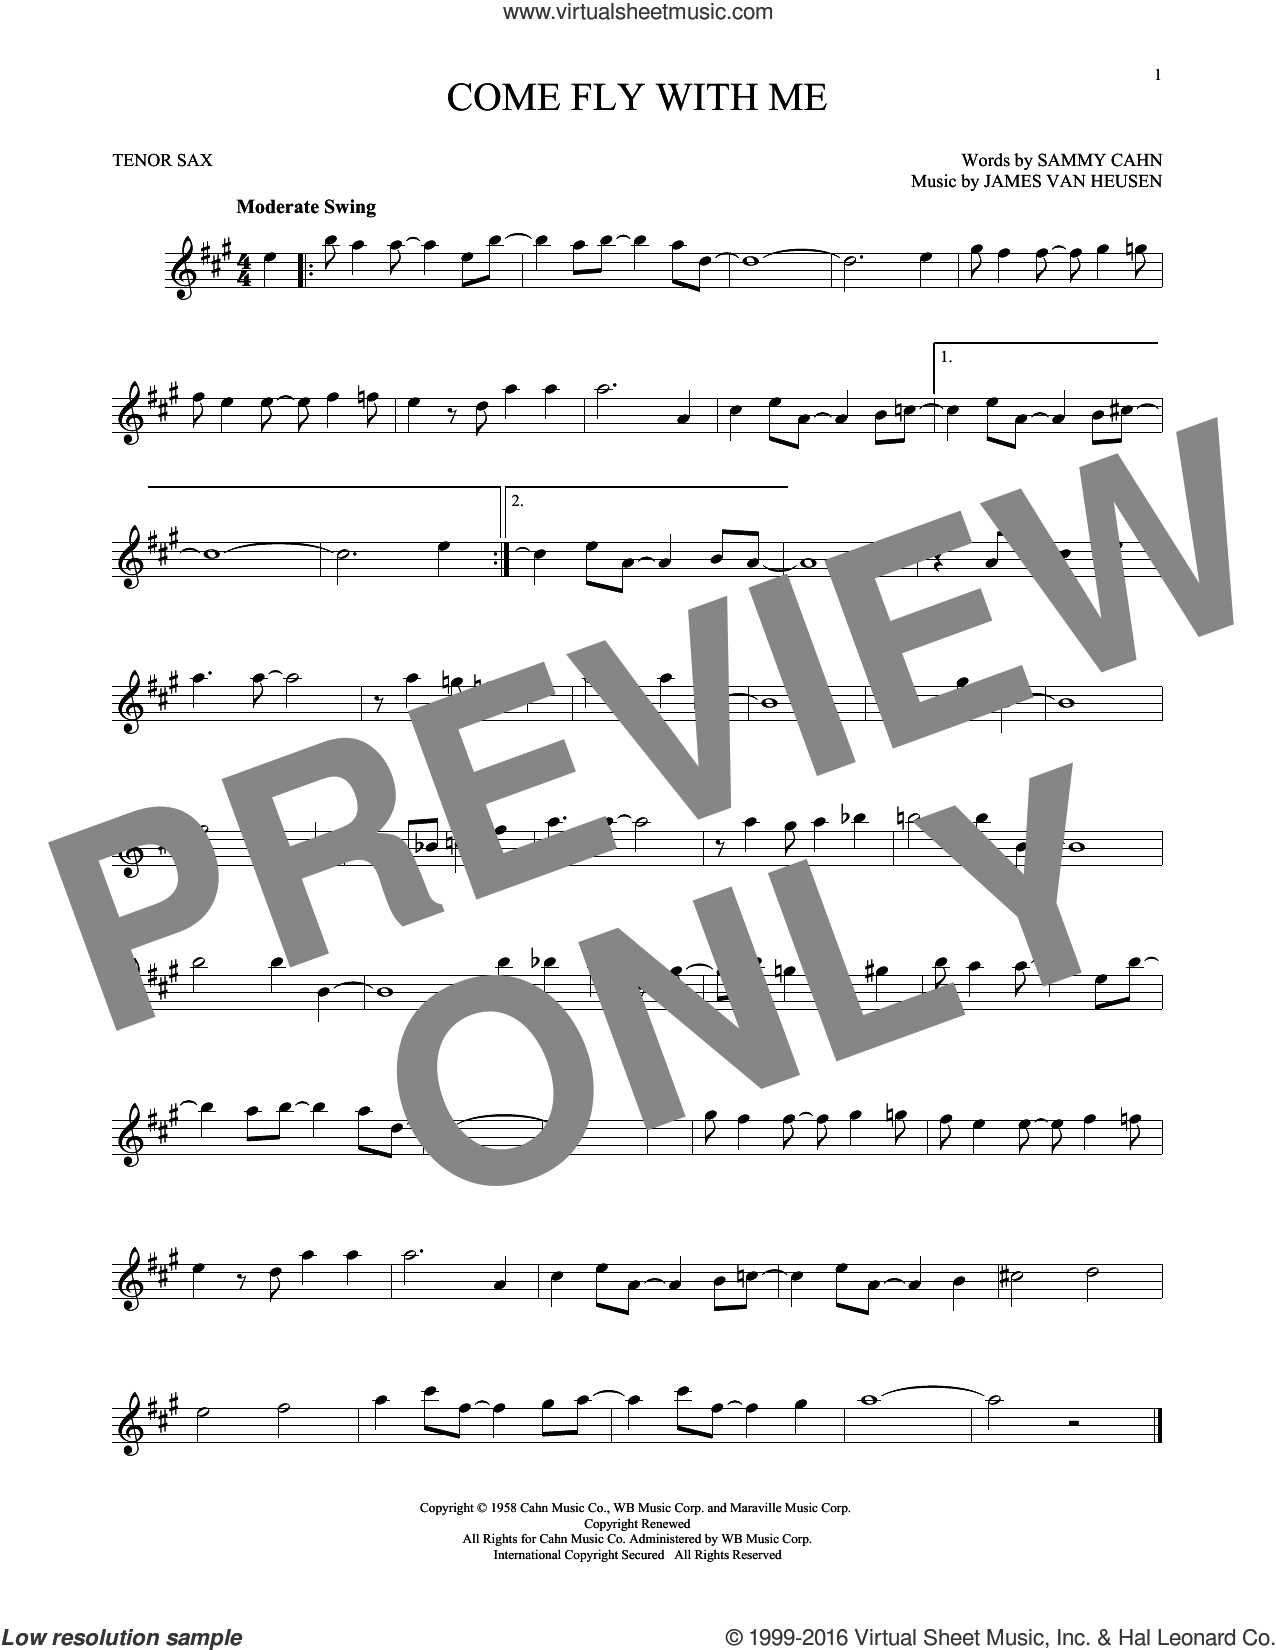 Come Fly With Me sheet music for tenor saxophone solo by Sammy Cahn, Jimmy van Heusen and Sammy Cahn & James Van Heusen, intermediate skill level